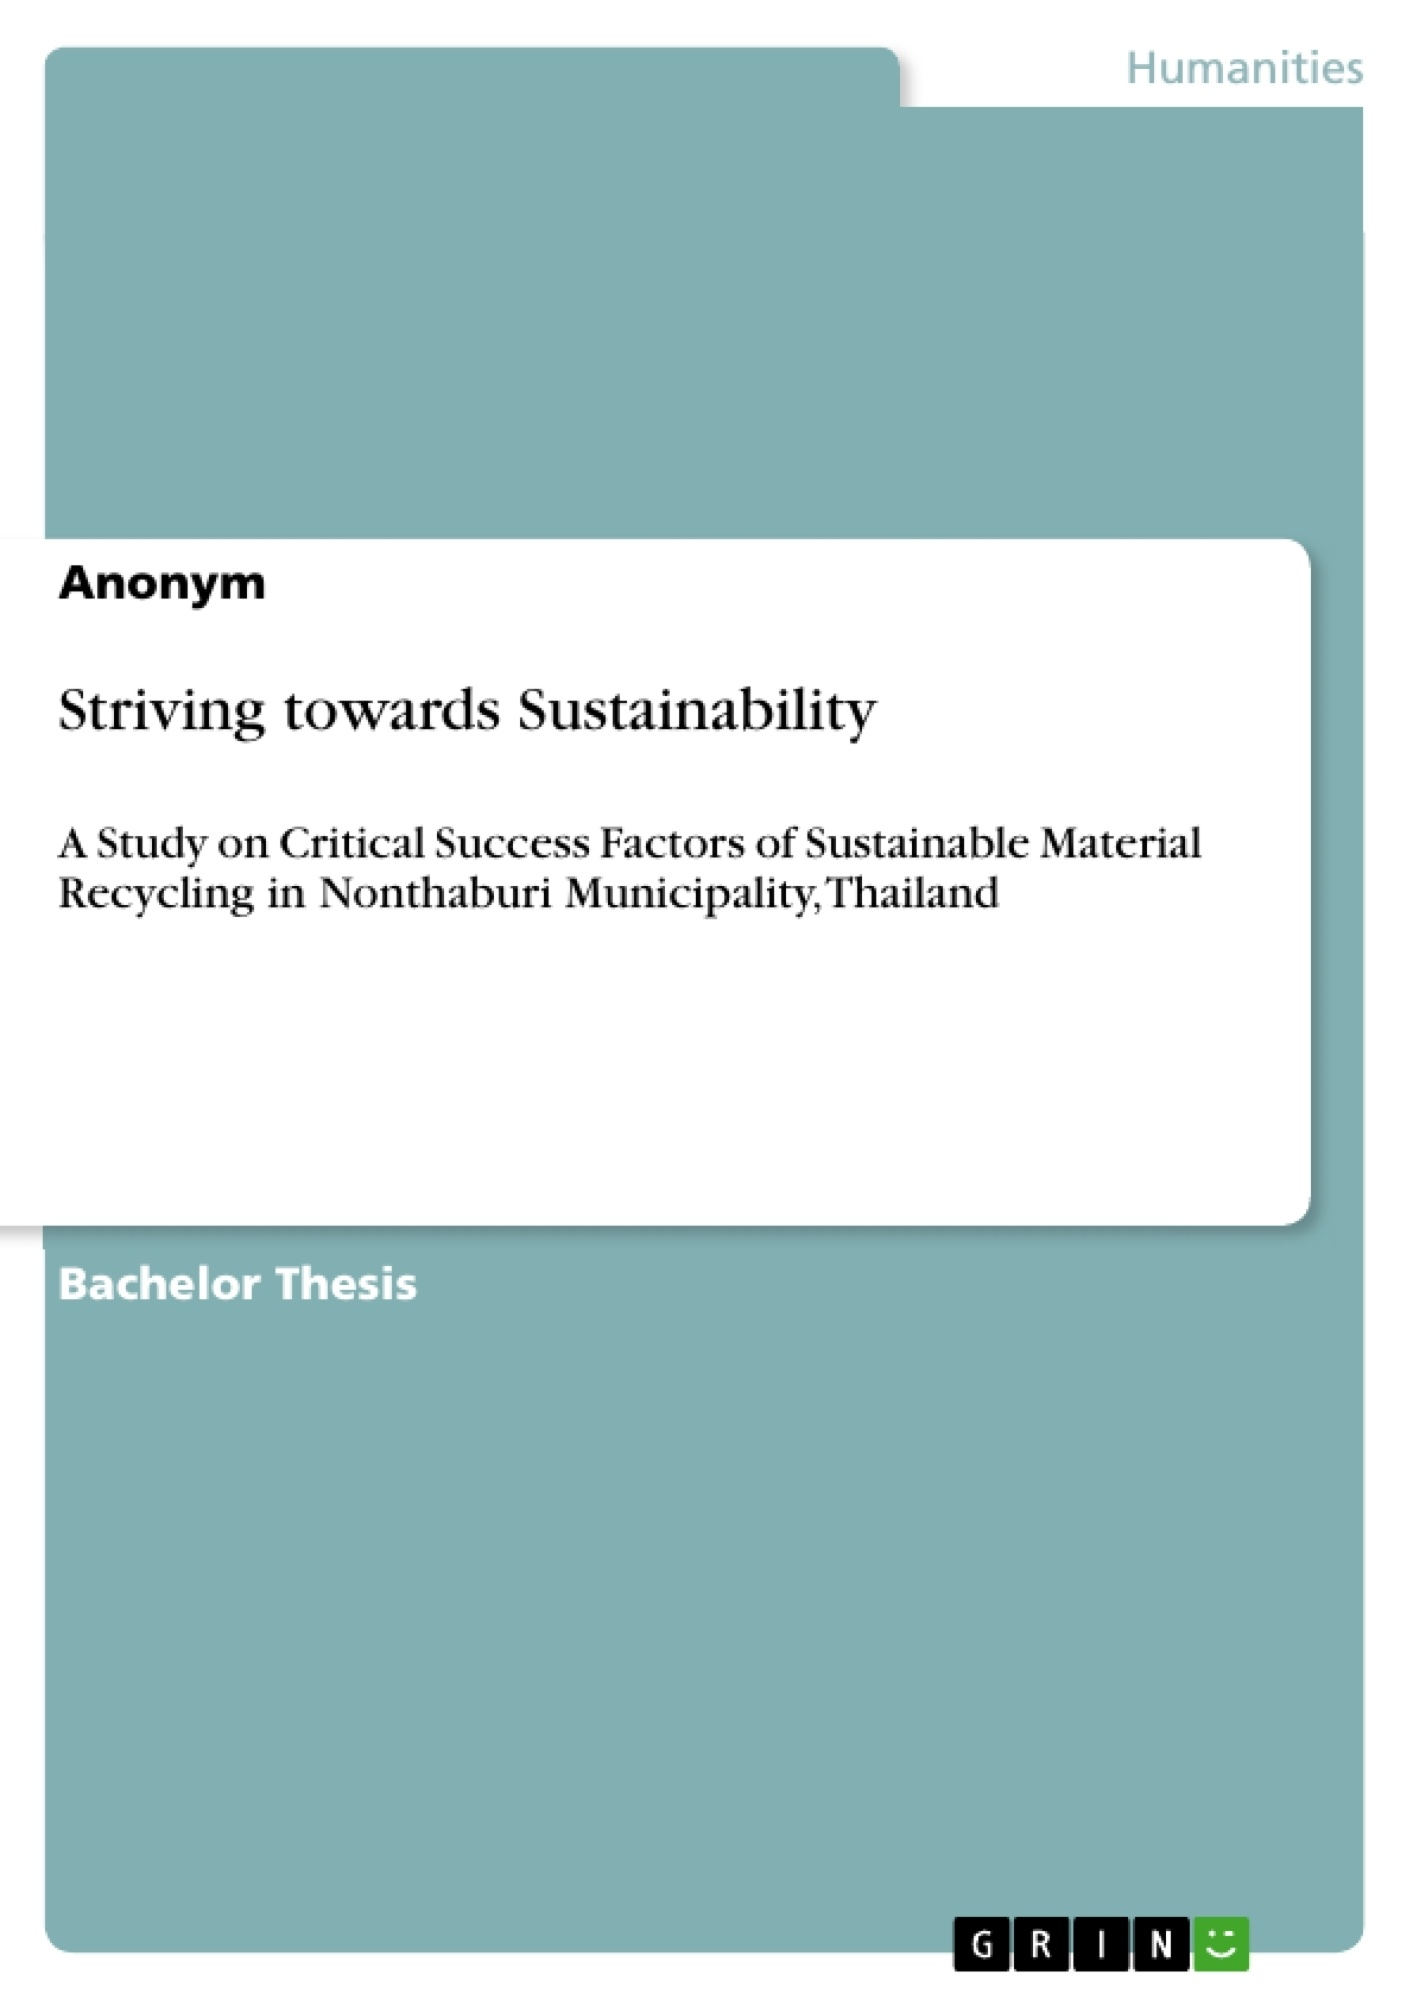 Title: Striving towards Sustainability